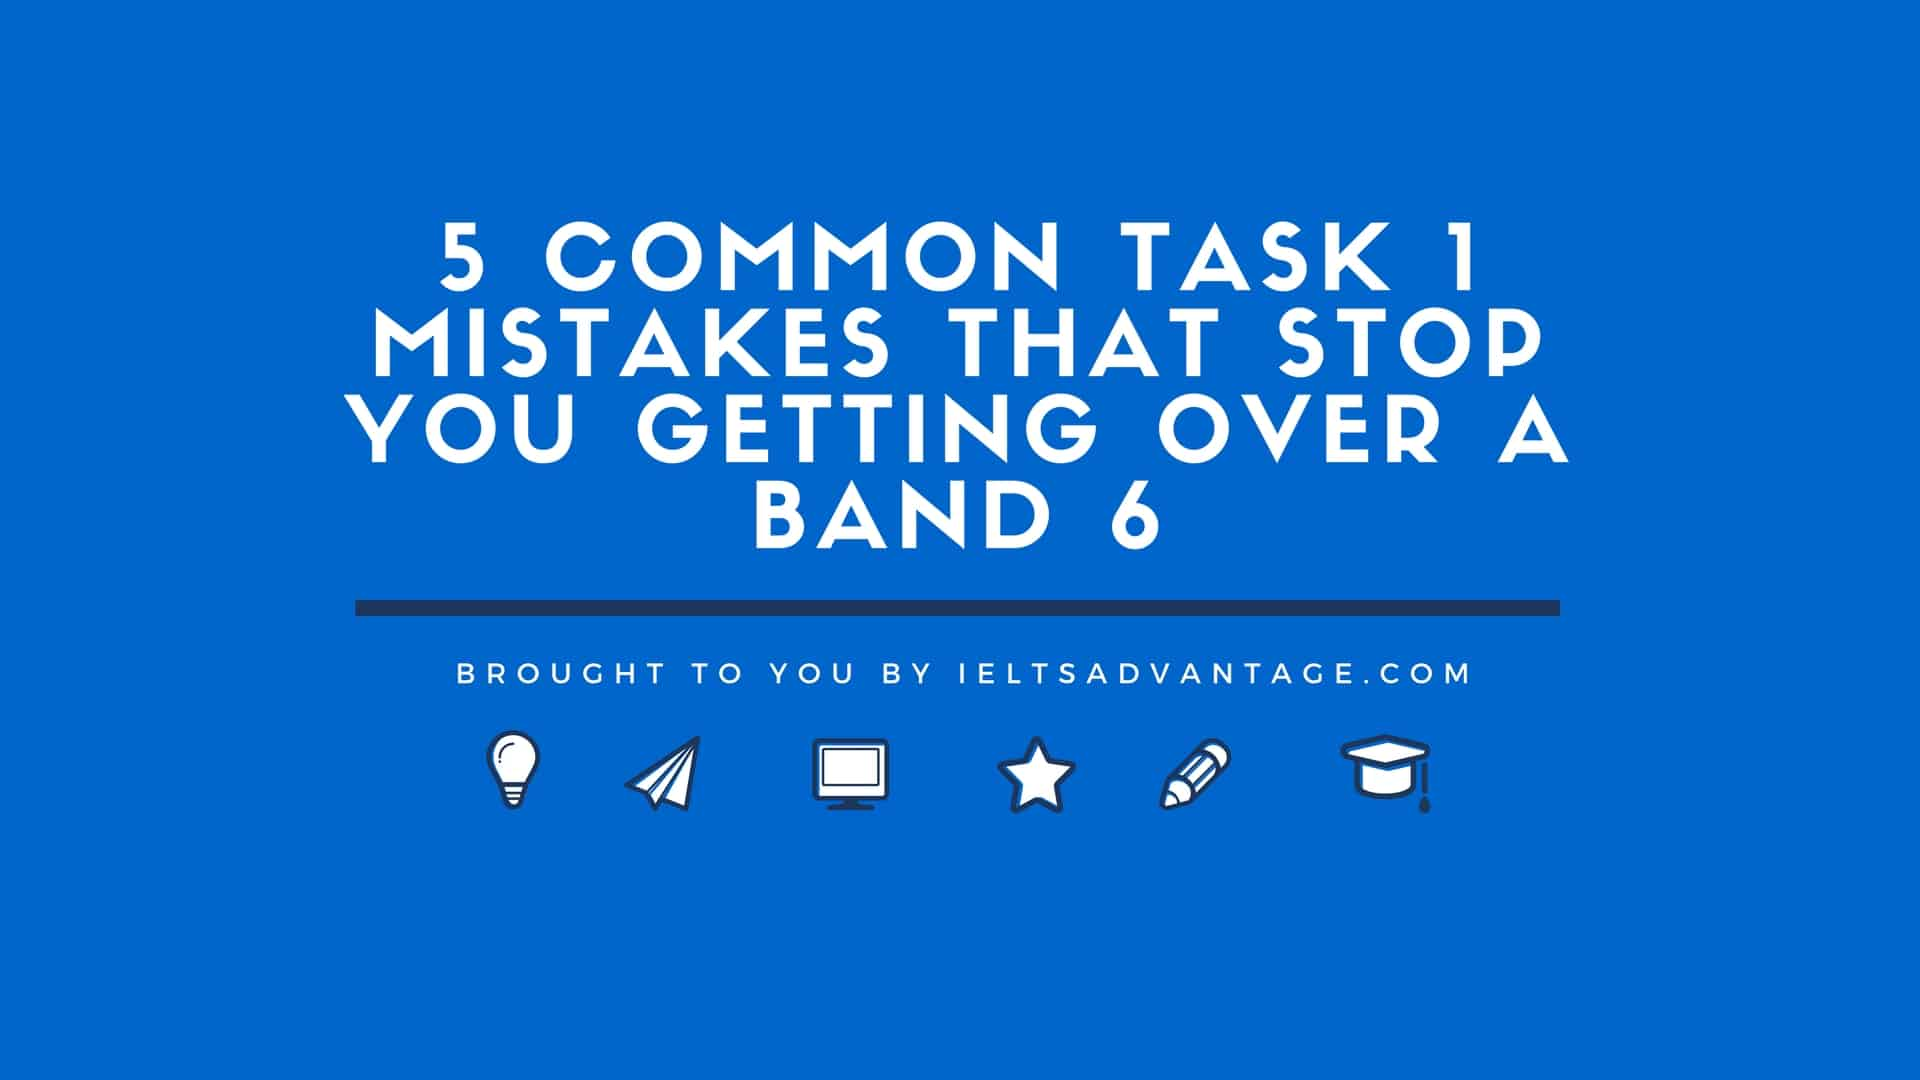 23 5 Common Task 1 Mistakes That Stop You Getting Over a Band 6